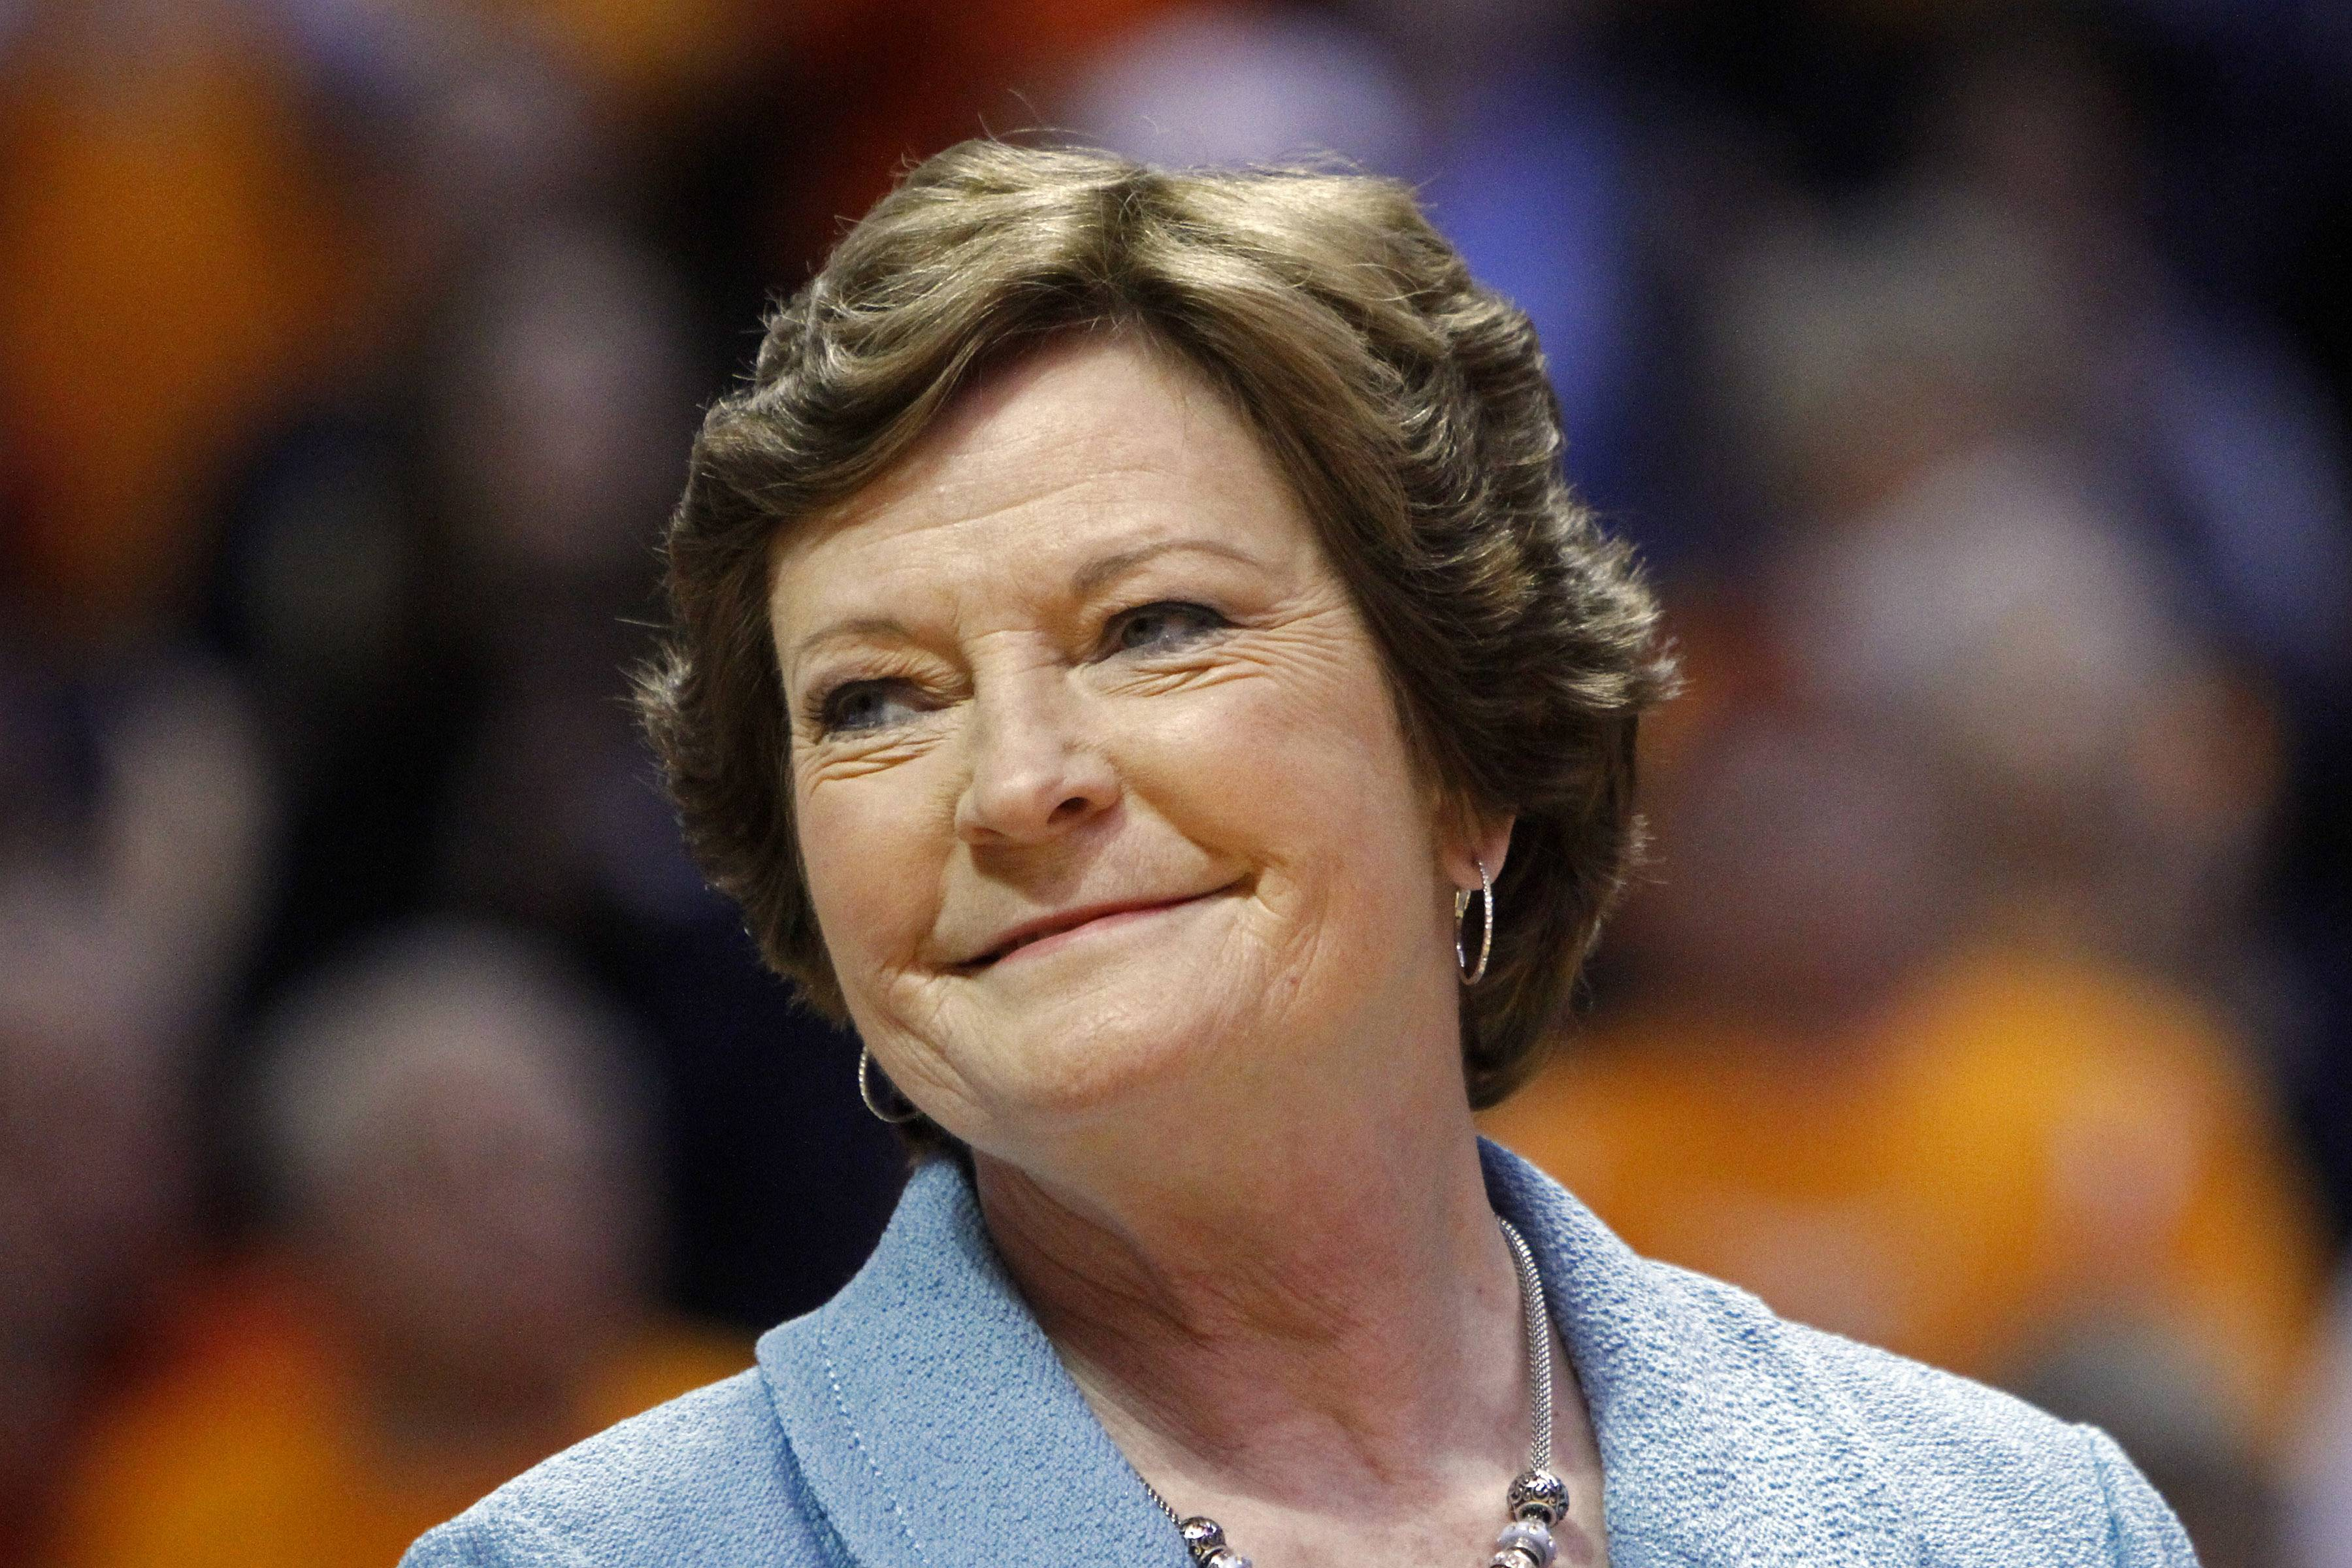 FILE - In this Jan. 28, 2013, file photo, former Tennessee women's basketball coach Pat Summitt smiles as a banner is raised in her honor before the team's NCAA college basketball game against Notre Dame in Knoxville, Tenn. Summitt, the winningest coach in Division I college basketball history who boosted women's game, has died at 64. (AP Photo/Wade Payne, File)